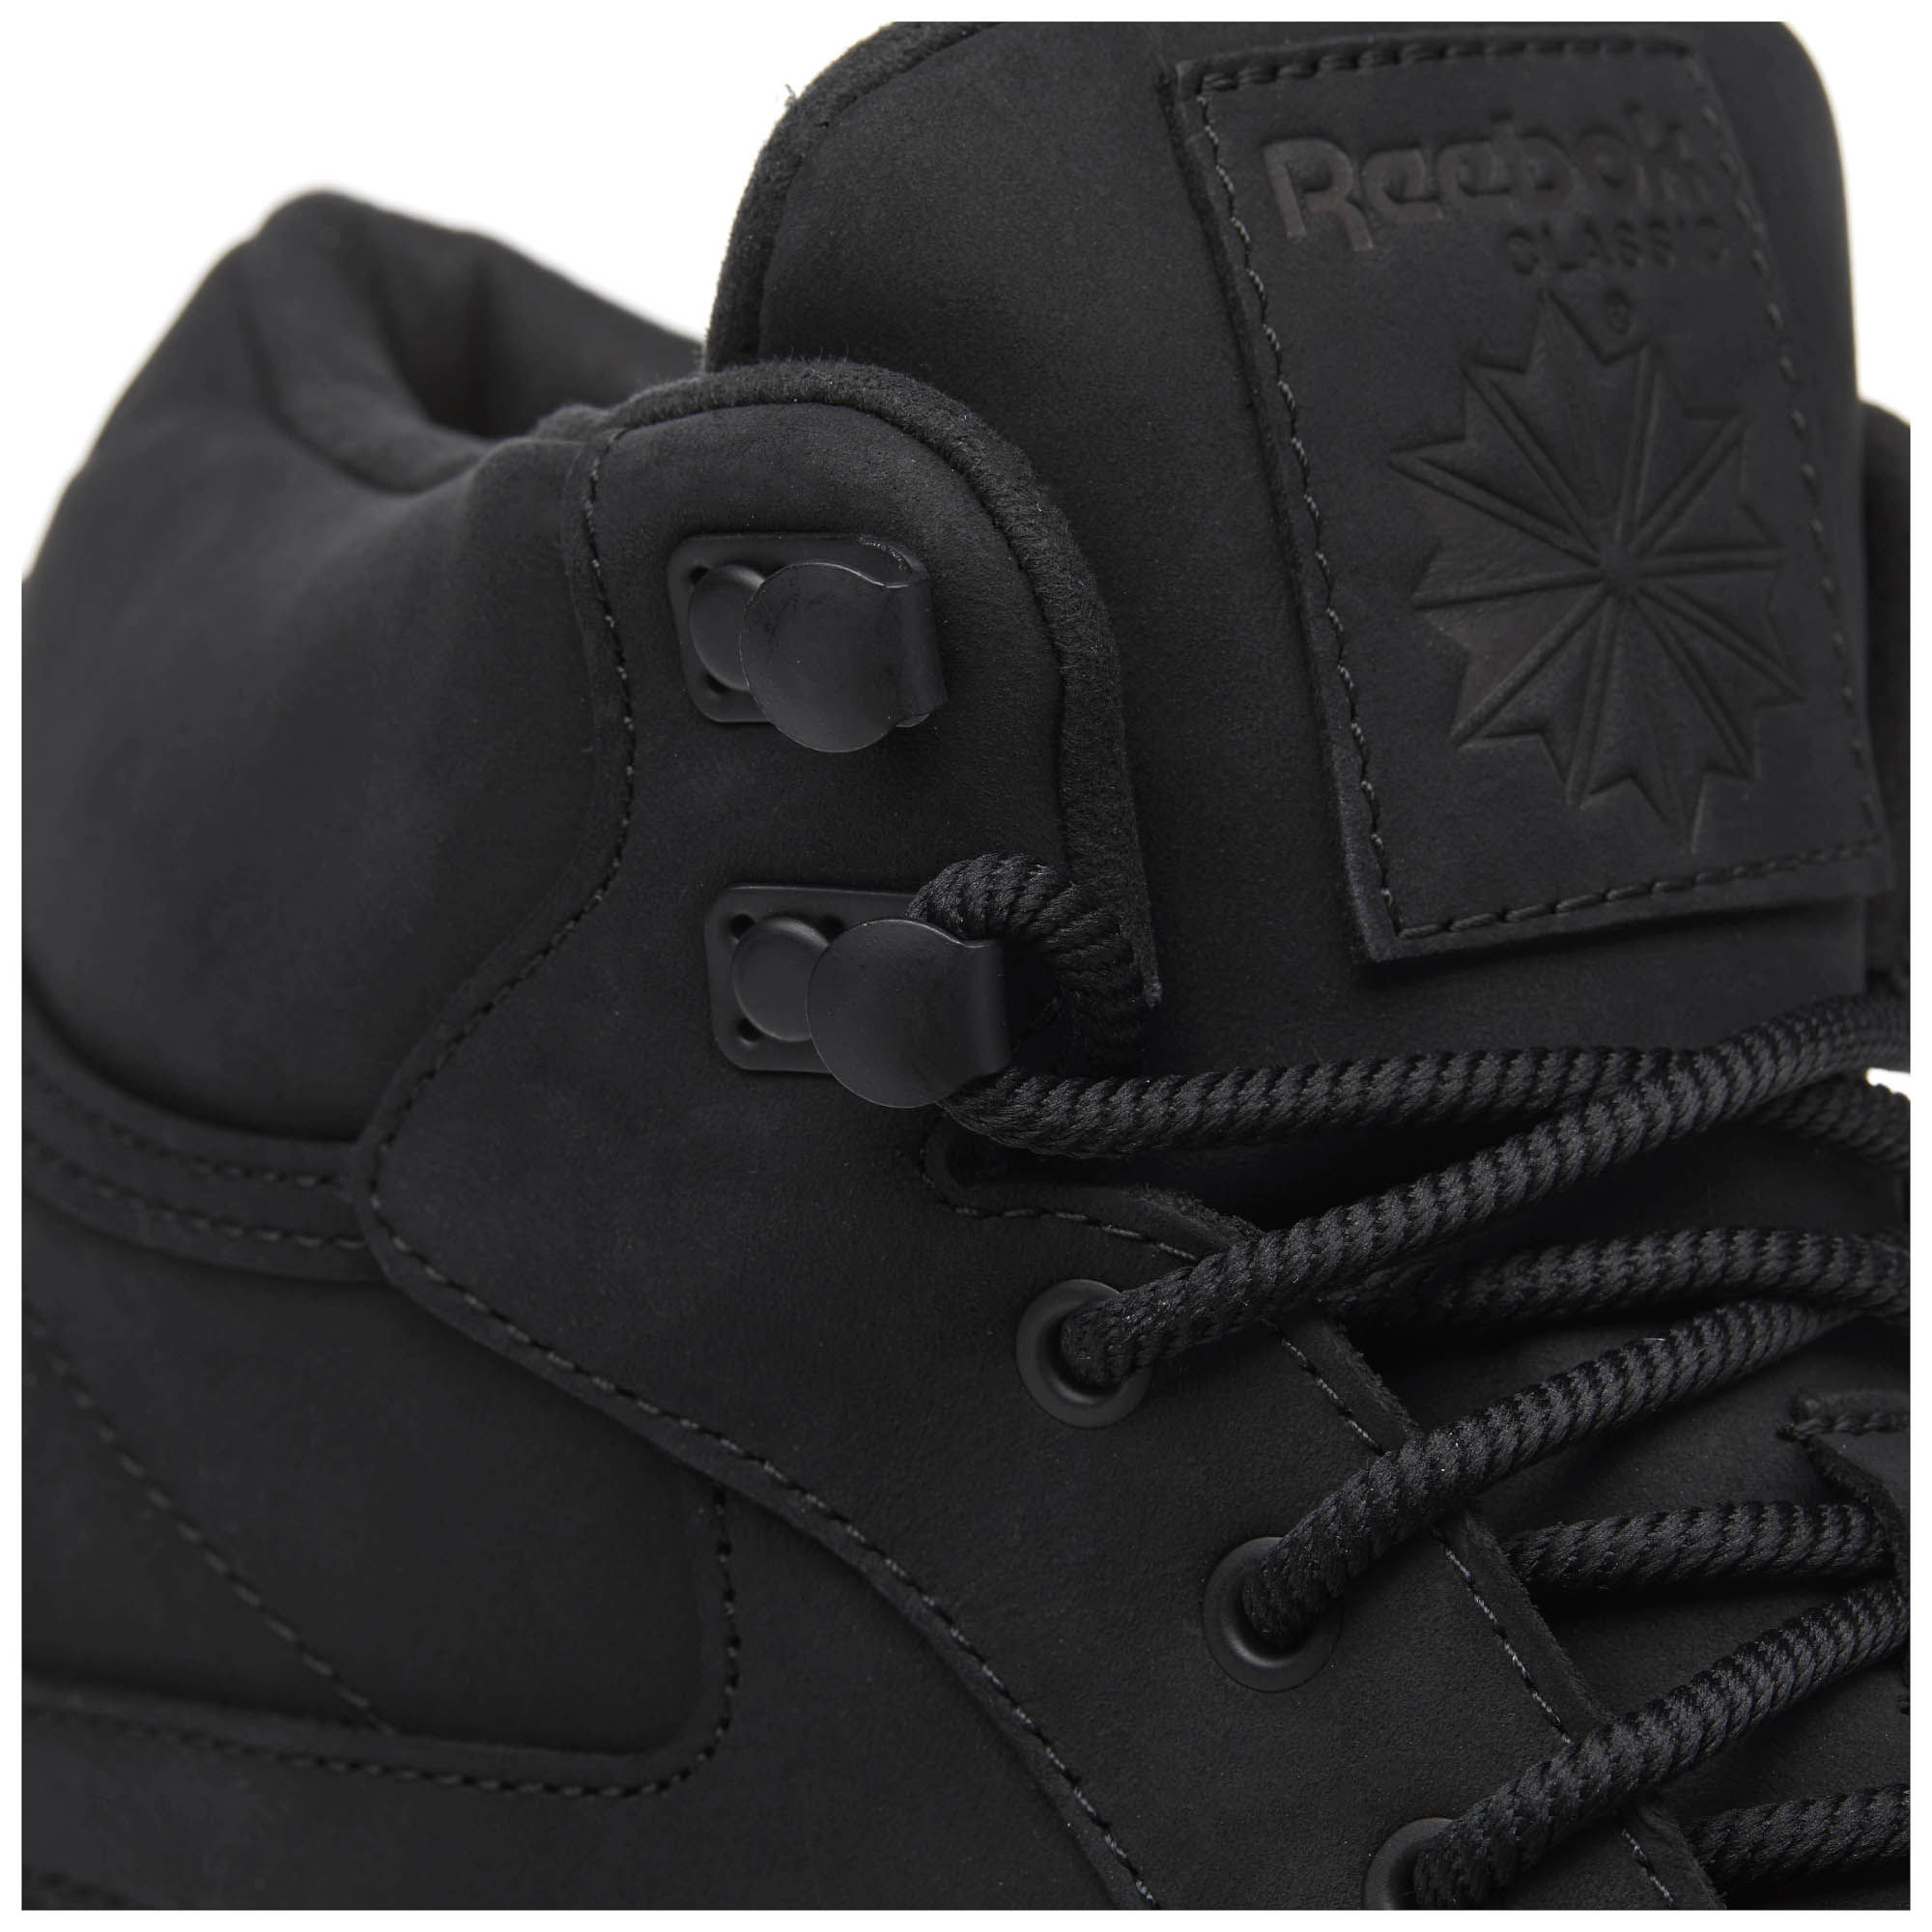 ad704619c2f6 The Classic Reebok Mid And Gore Is With Ready Tex Winter Leather TRRqrx5w